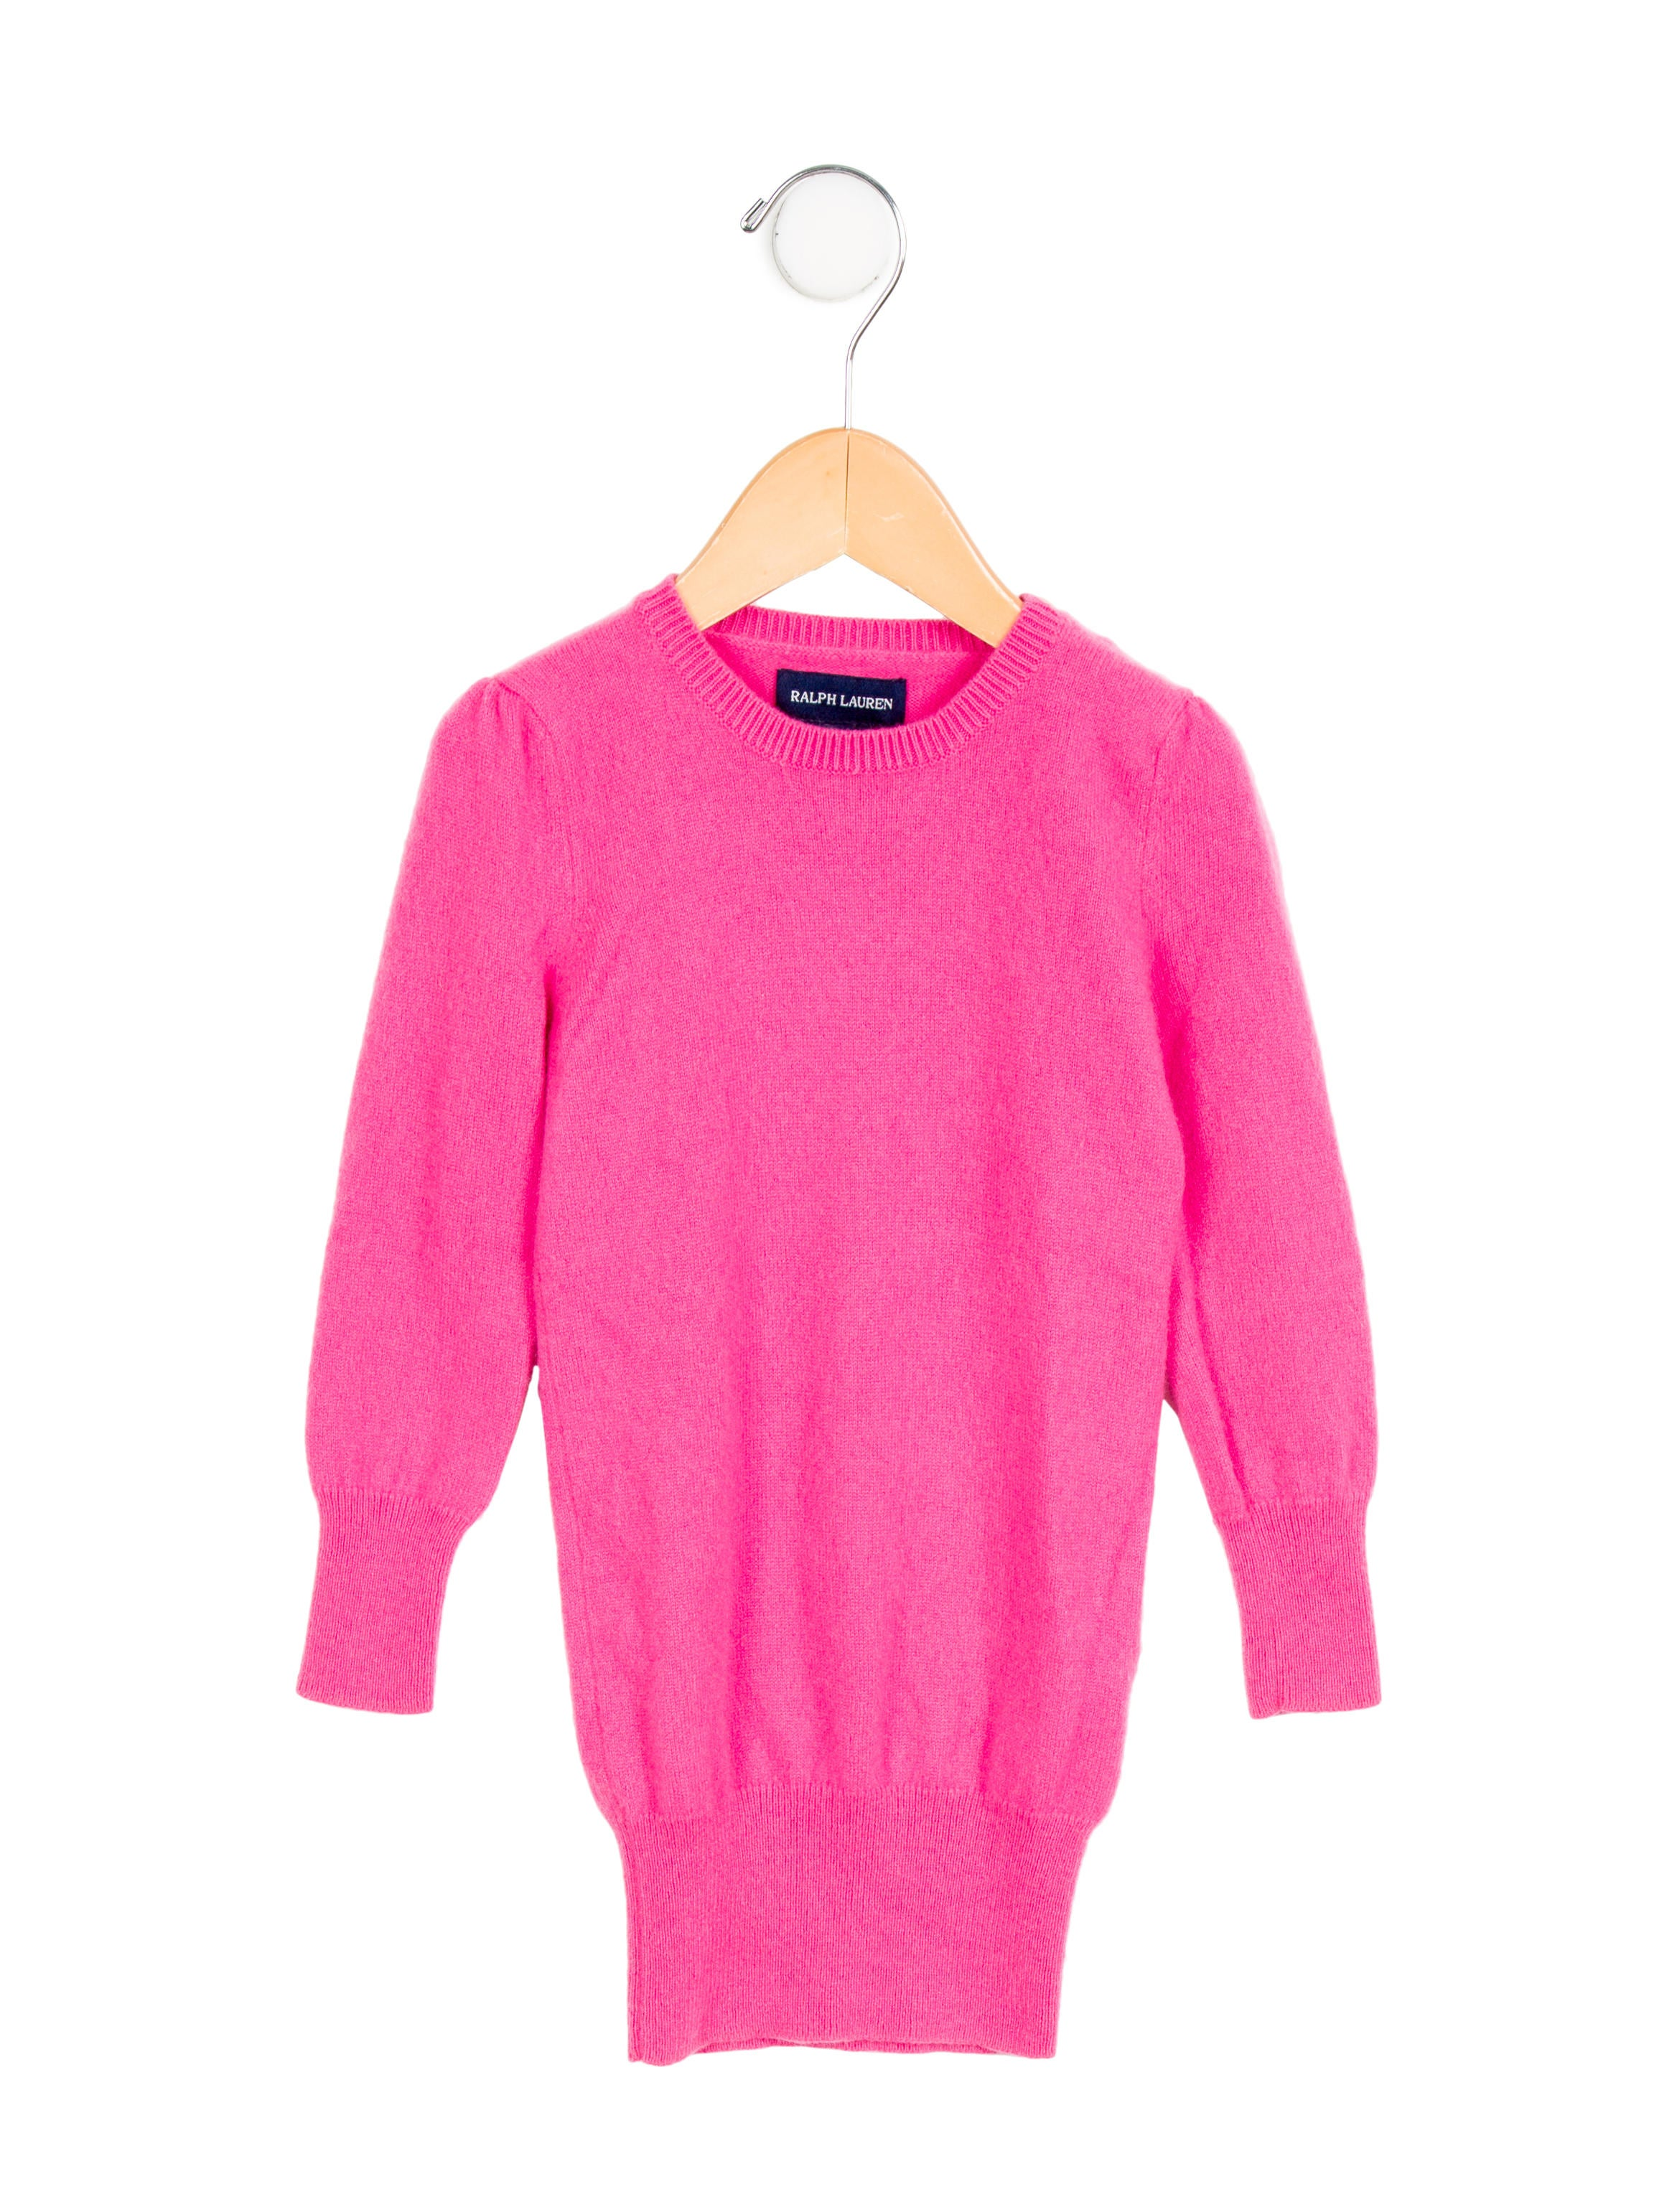 aacdbca7b Ralph Lauren Girls  Cashmere Sweater Dress - Girls - WYG22195